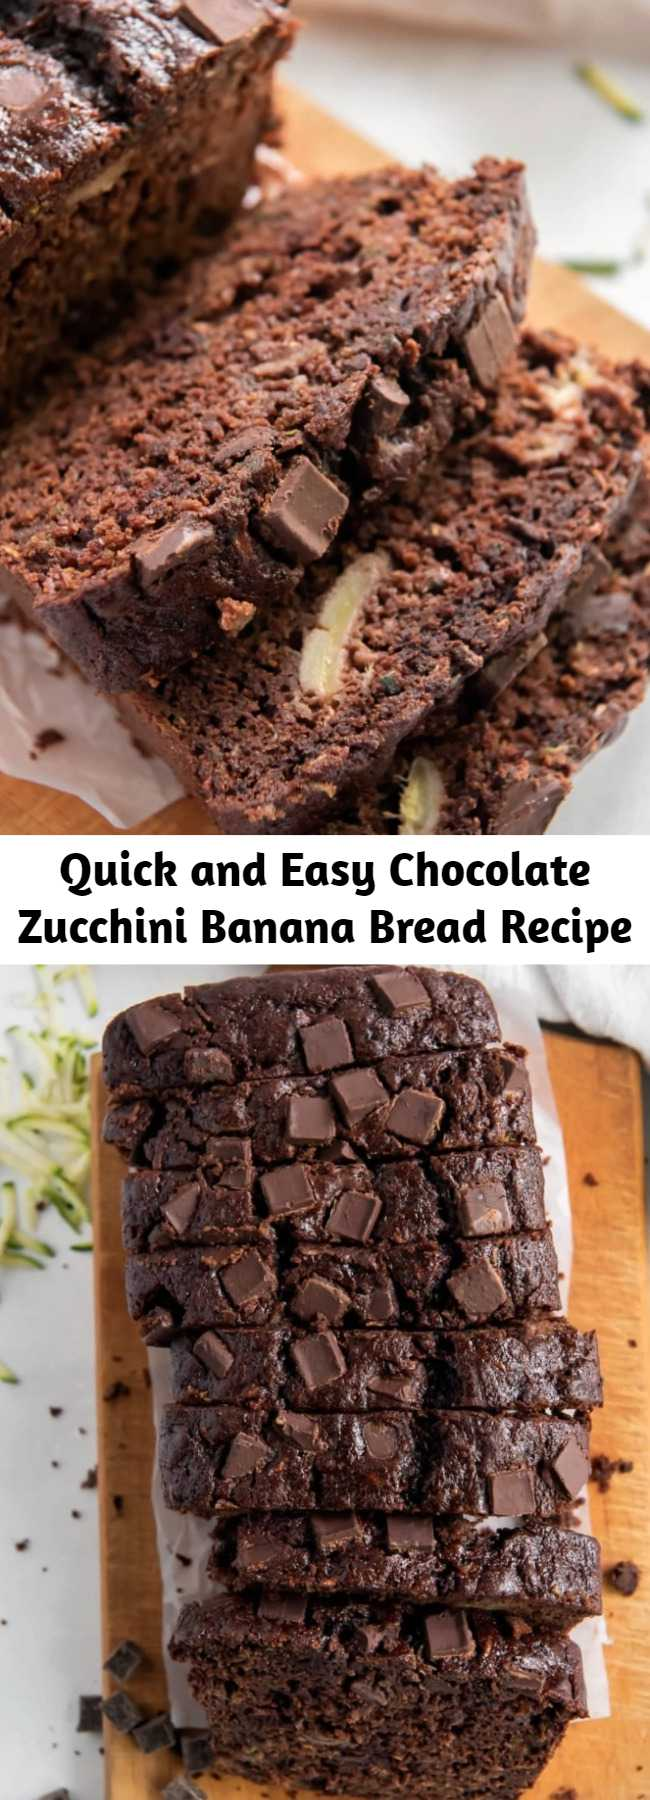 Quick and Easy Chocolate Zucchini Banana Bread Recipe - Chocolate zucchini banana bread is dense and moist. Filled with chocolate chips, it's the perfect bread to eat any time of day!